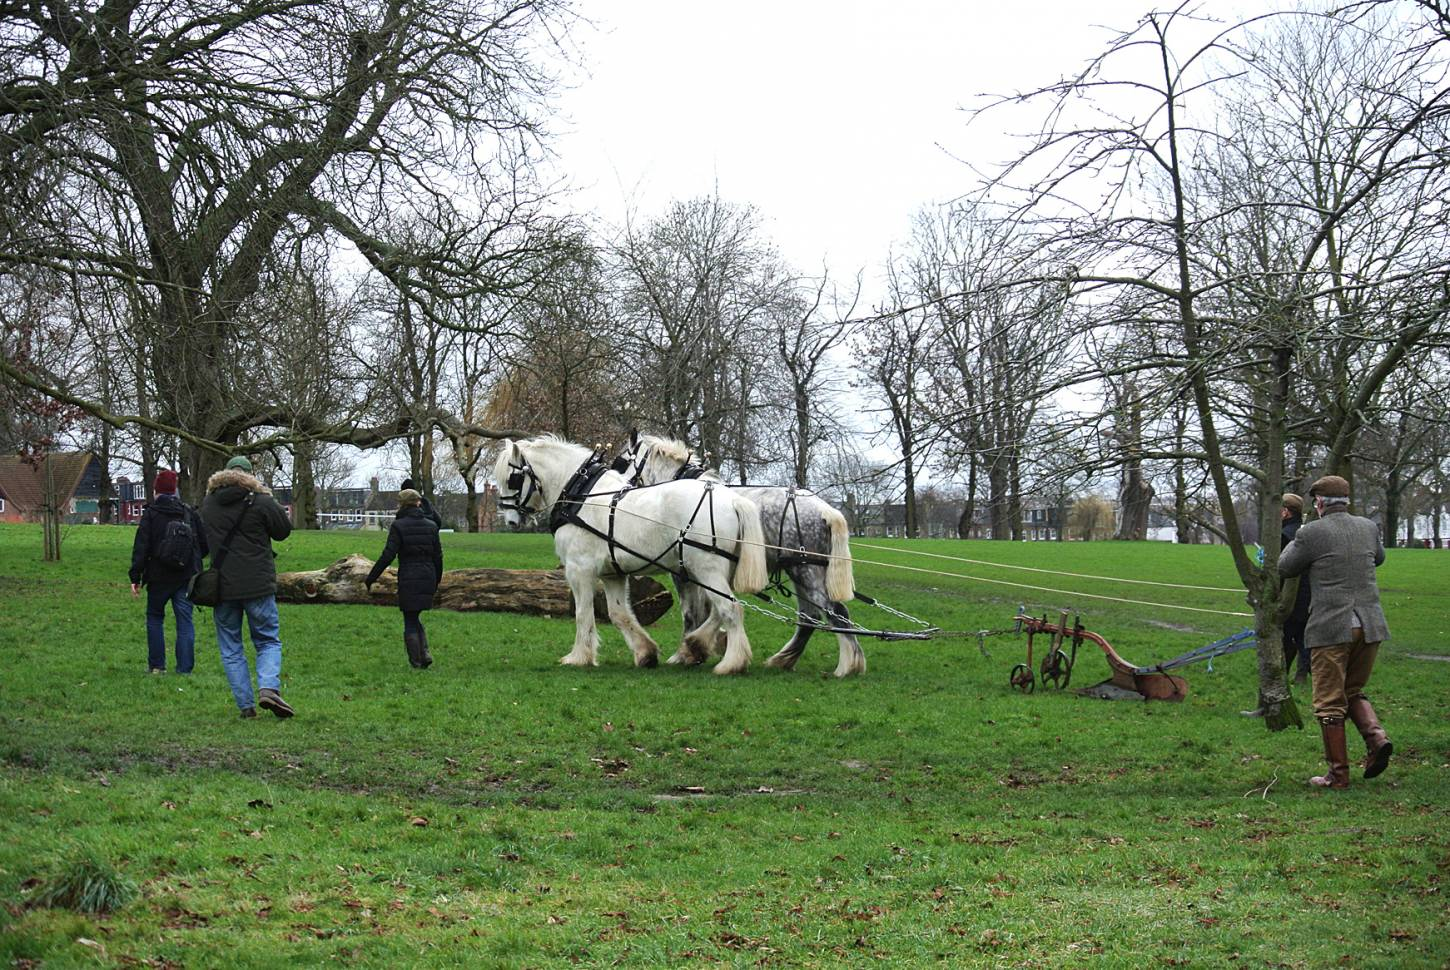 Shire horses, Heath and Nobby with ploughman Tom Nixon from <a href='http://www.operationcentaur.com/' target='_blank'>Operation Centaur</a> come to plough the <a href='https://twitter.com/ruskinparkse5?lang=en' target='_blank'>Ruskin Park</a> wheat patch. Image: Marie Cullen - 12:08pm&nbsp;9<sup>th</sup>&nbsp;Feb.&nbsp;'18